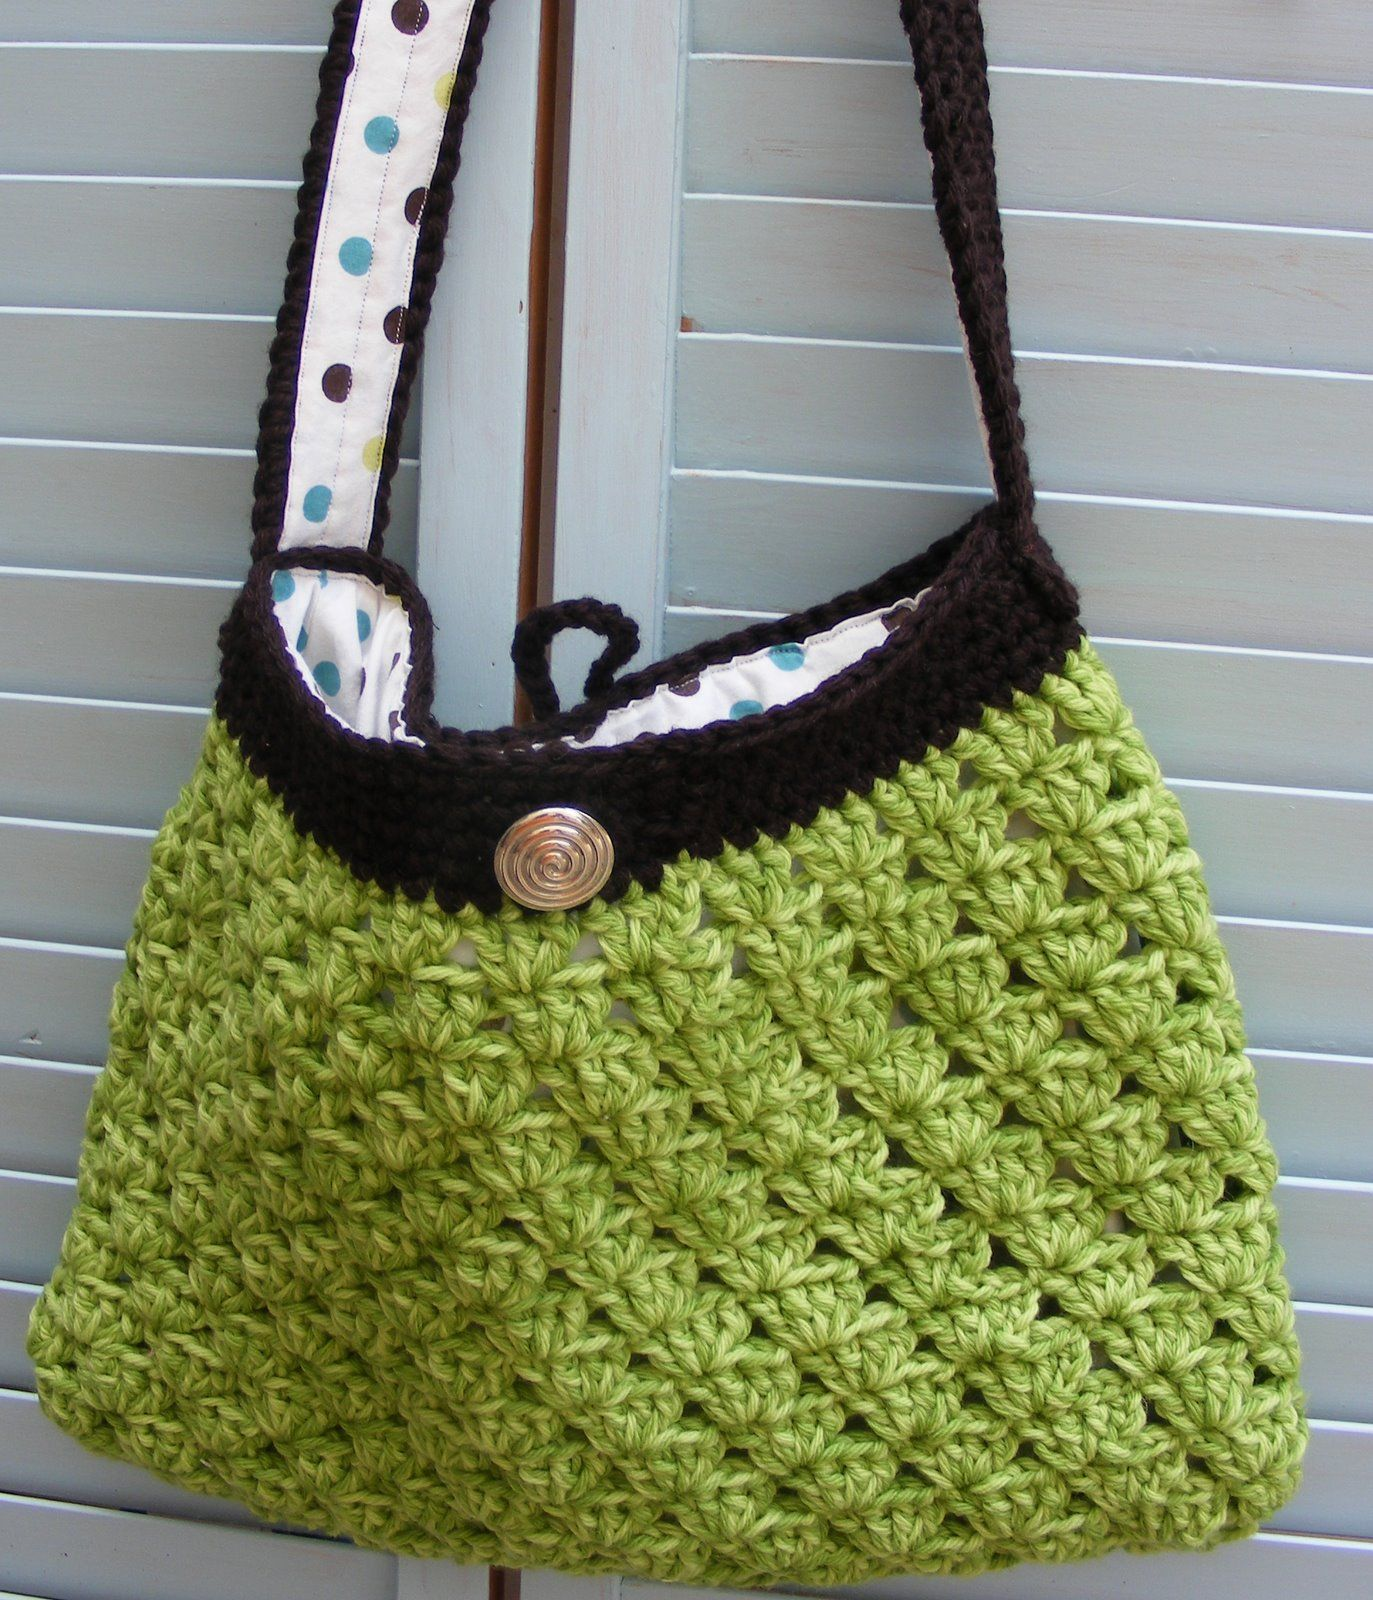 Crochet Purse | FREE CROCHET CUPCAKE PURSE PATTERN | Crochet and ...